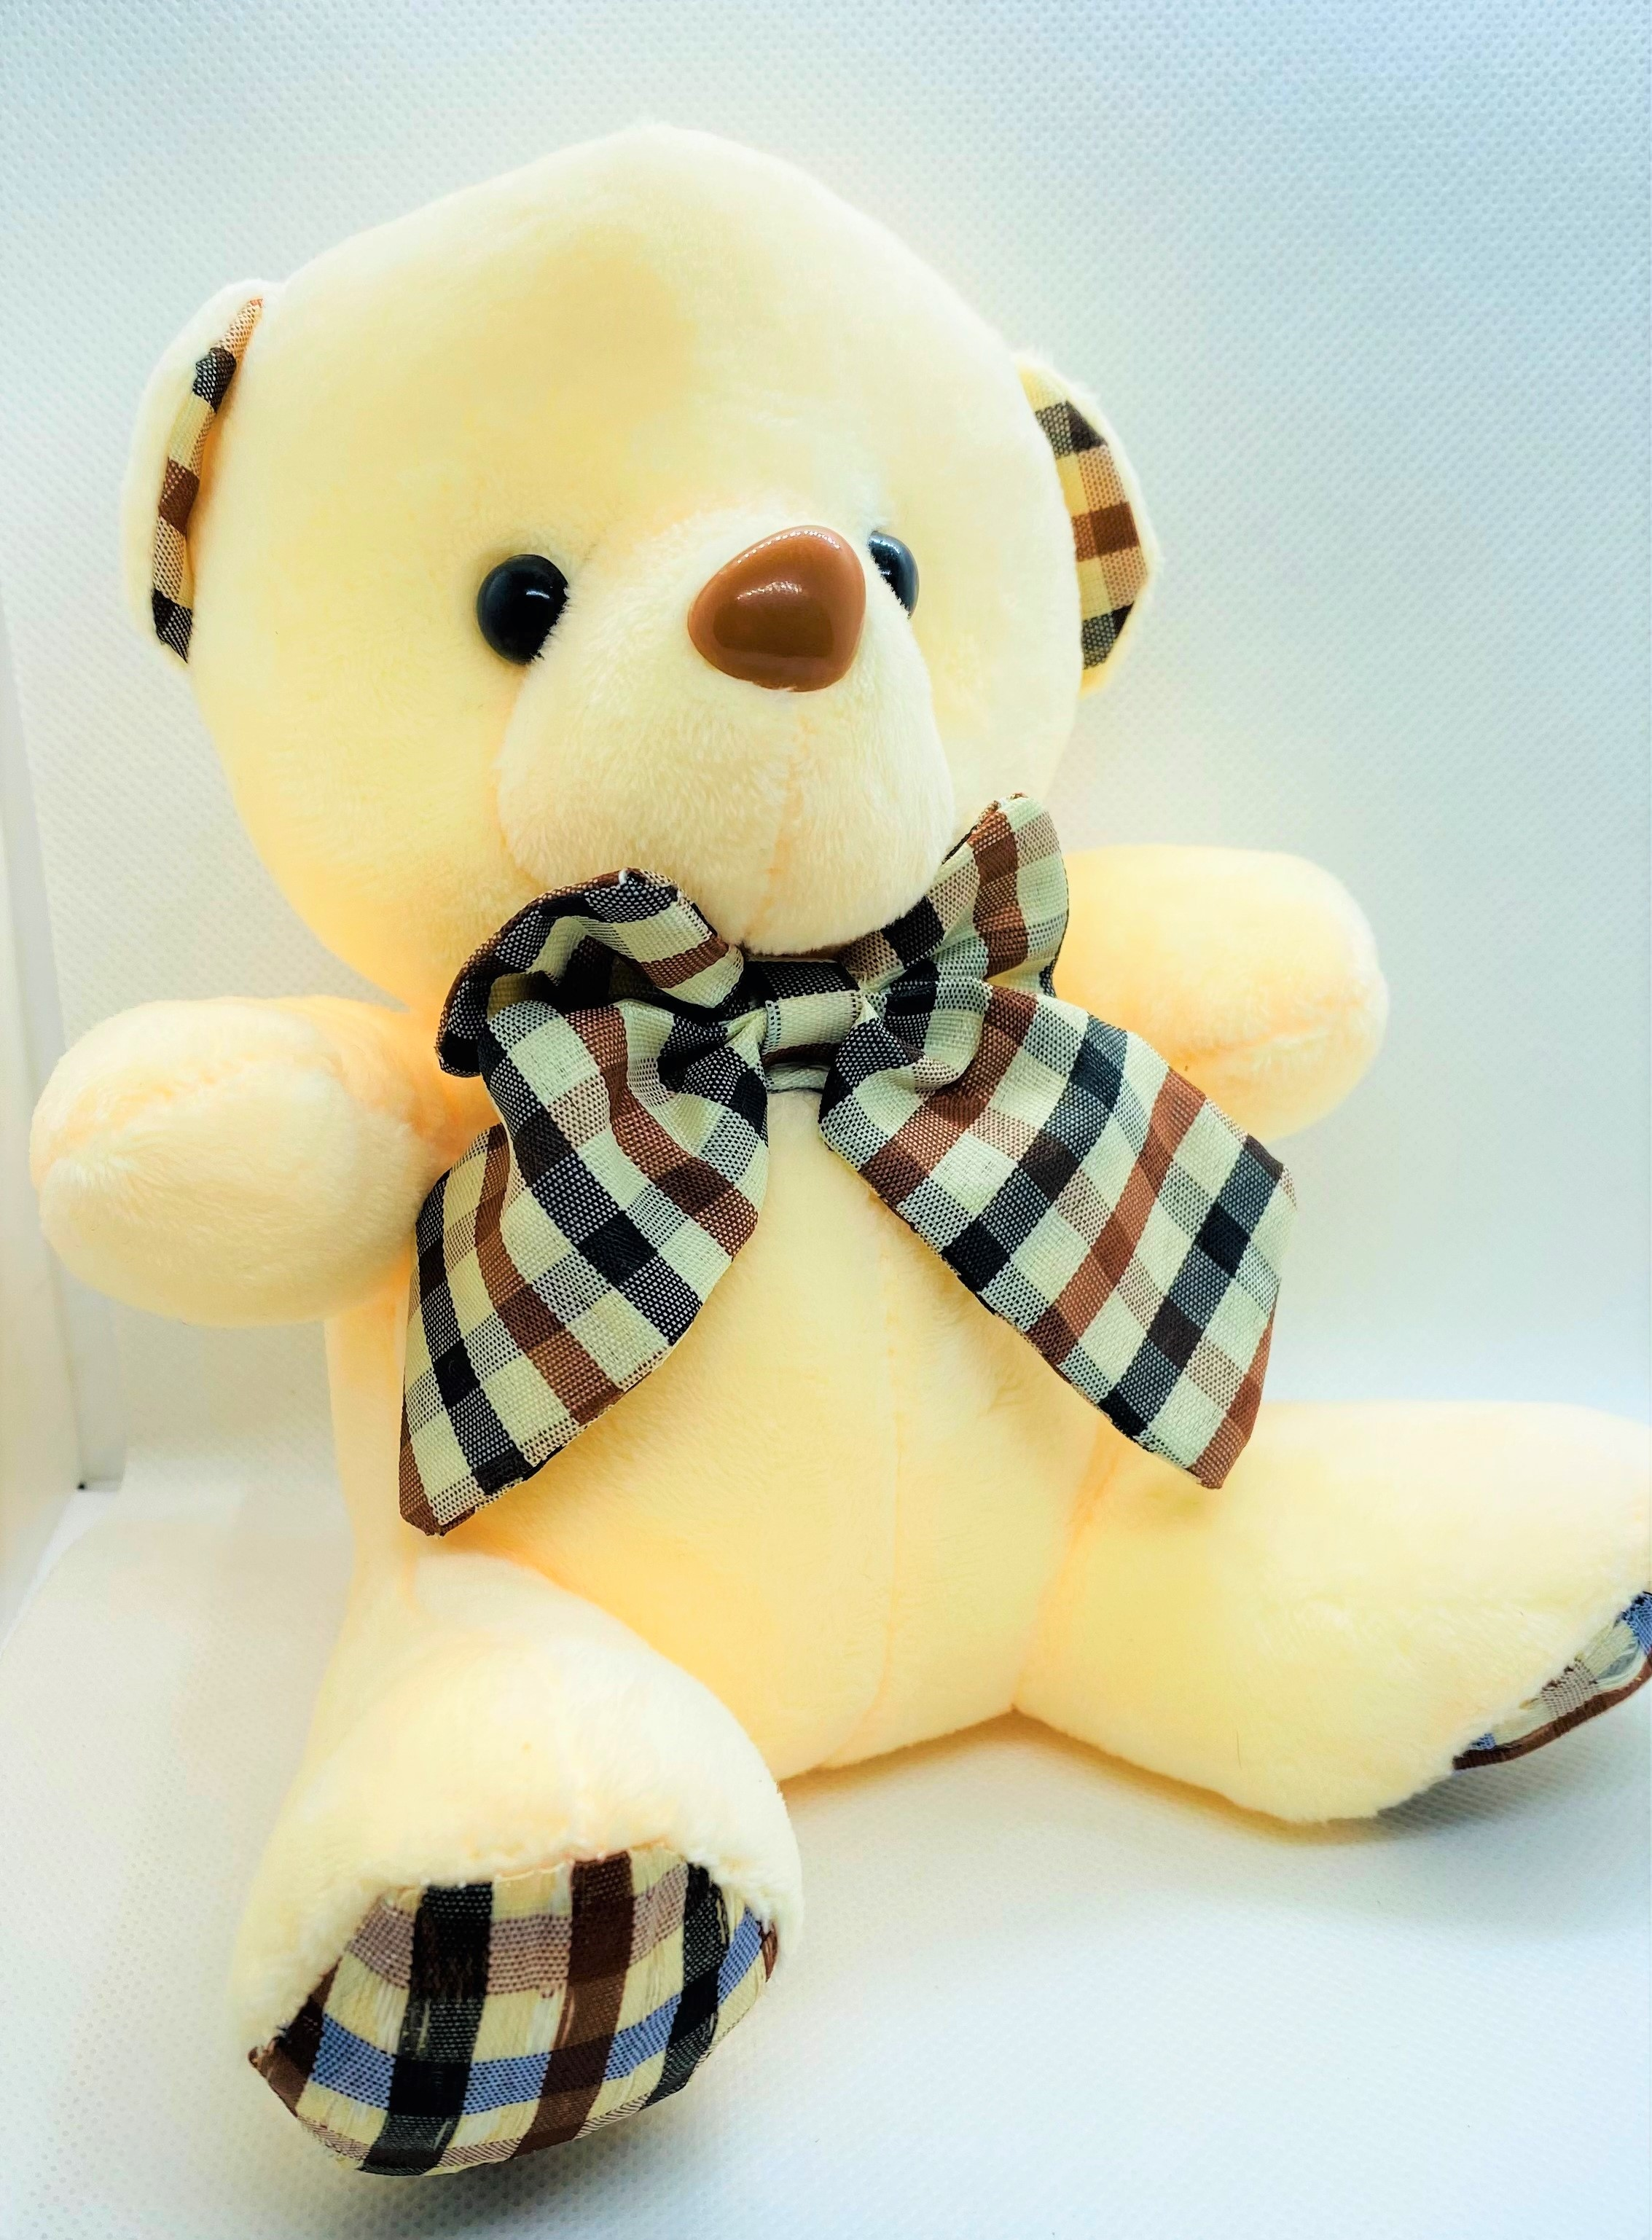 07 inch Teddy Bear Stuffed Animals, Pack of 1 Small Baby Bear Plush, Soft Toy for Kids, Boys and Girls